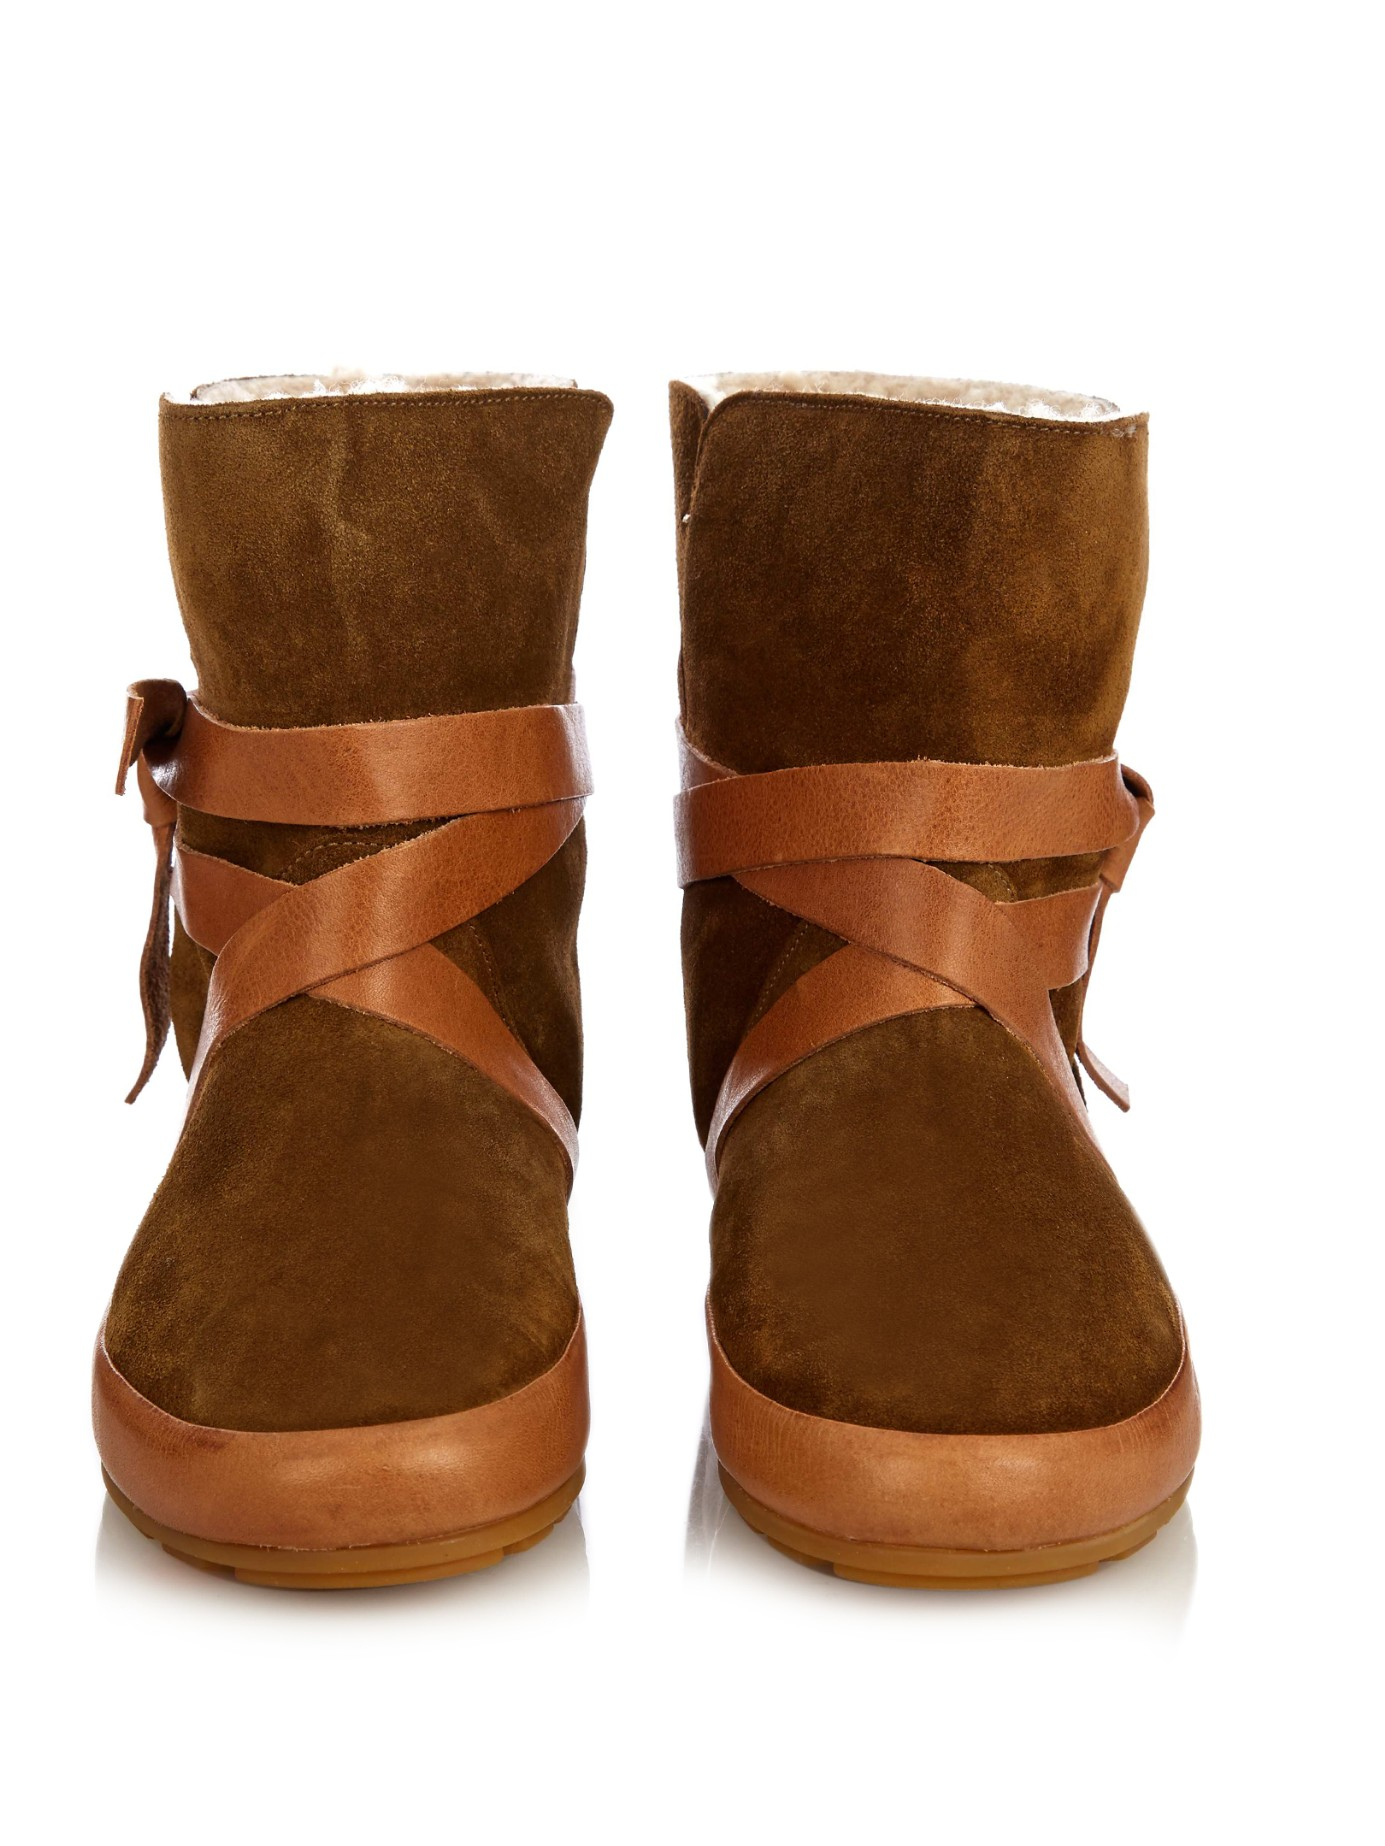 marant nygel suede shearling boots in brown lyst